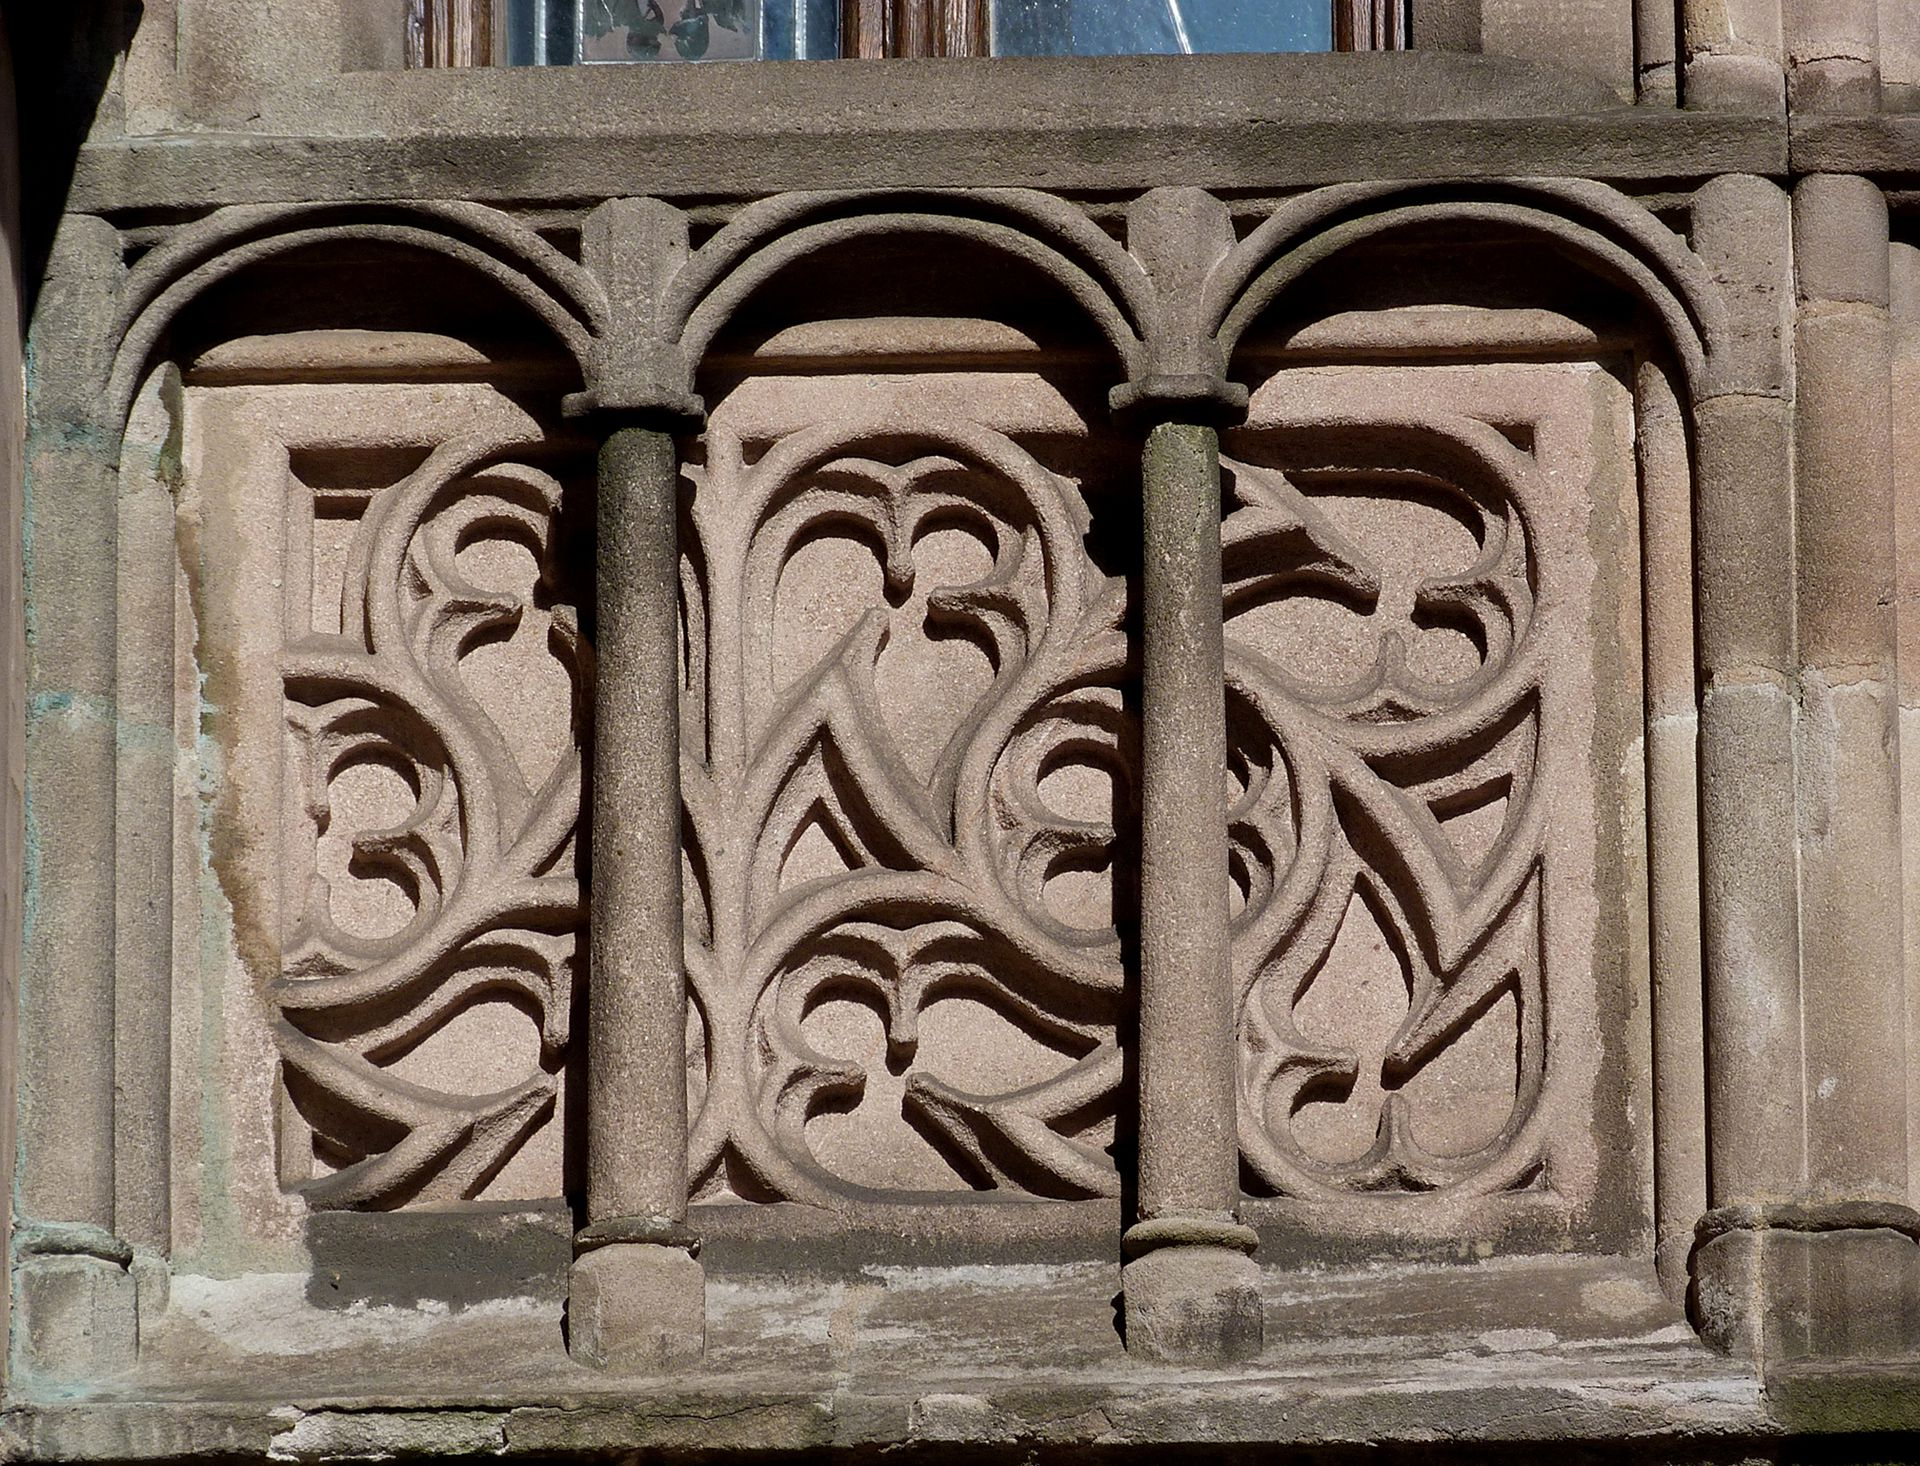 Building with Parlors for the Municipal Council Front of the Parlors for the Municipal Council, south side, detail of breastwork with tracery and stone lattice in front